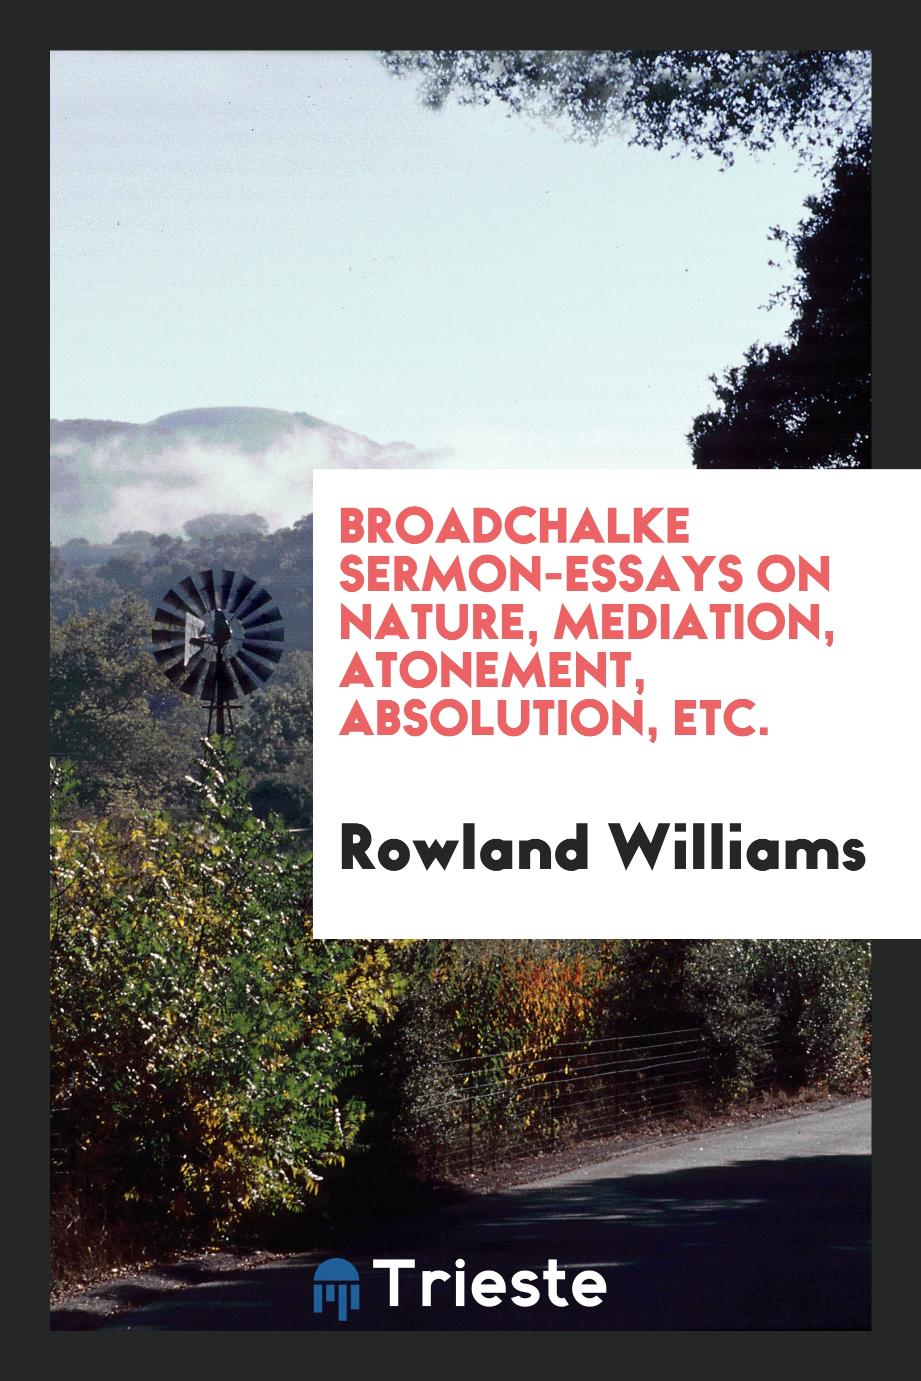 Broadchalke sermon-essays on nature, mediation, atonement, absolution, etc.